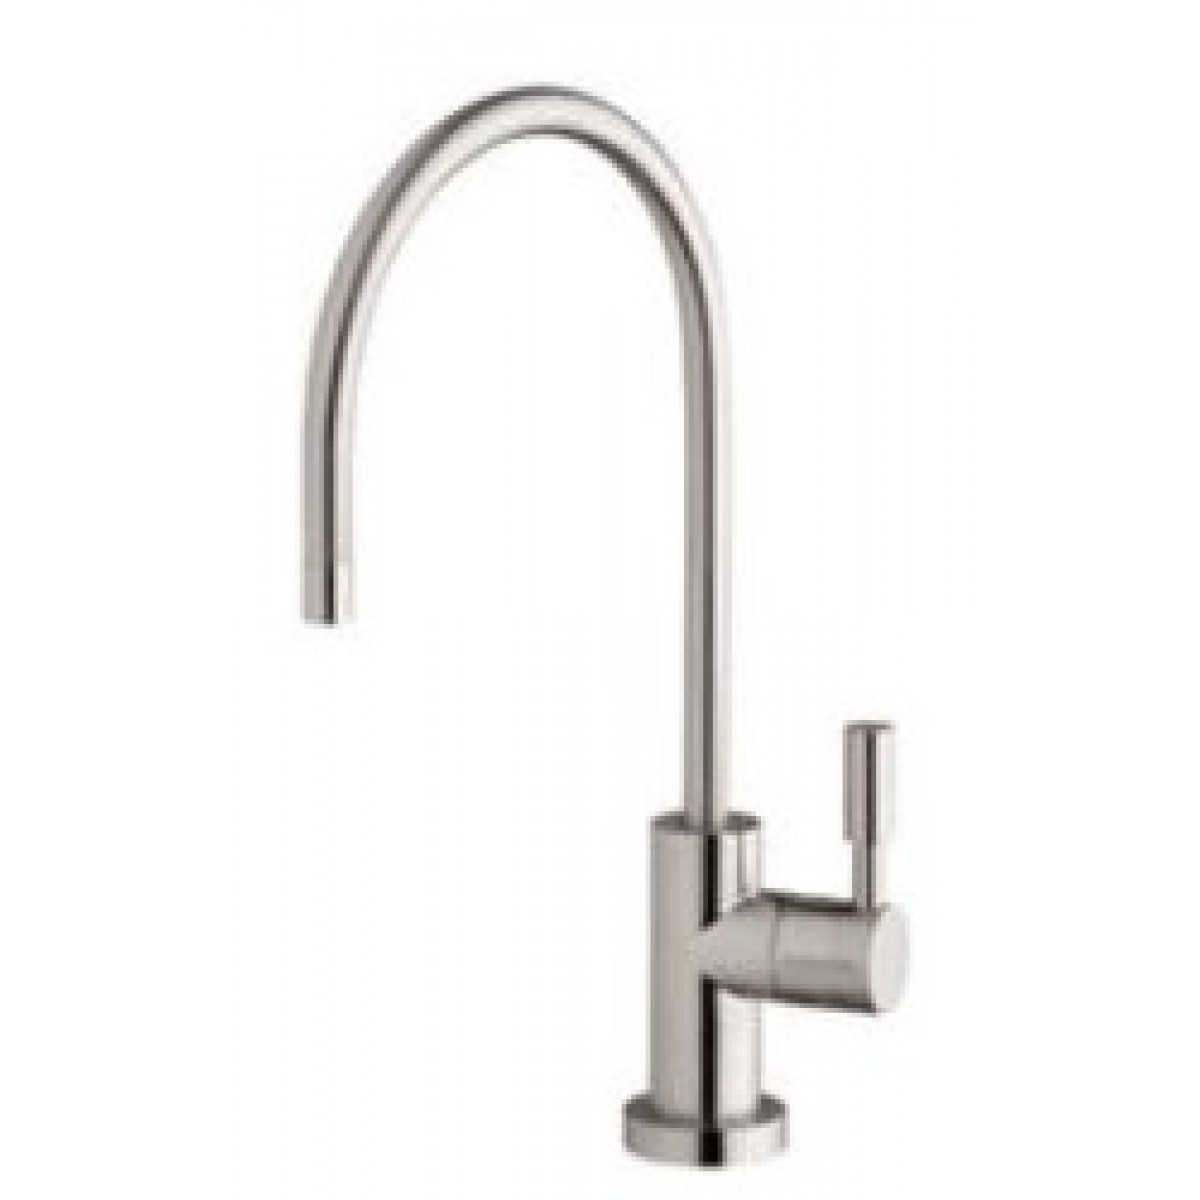 Ideas, ro faucets stainless steel ro faucets stainless steel replacement faucets for point of use water waterfilters 1200 x 1200  .